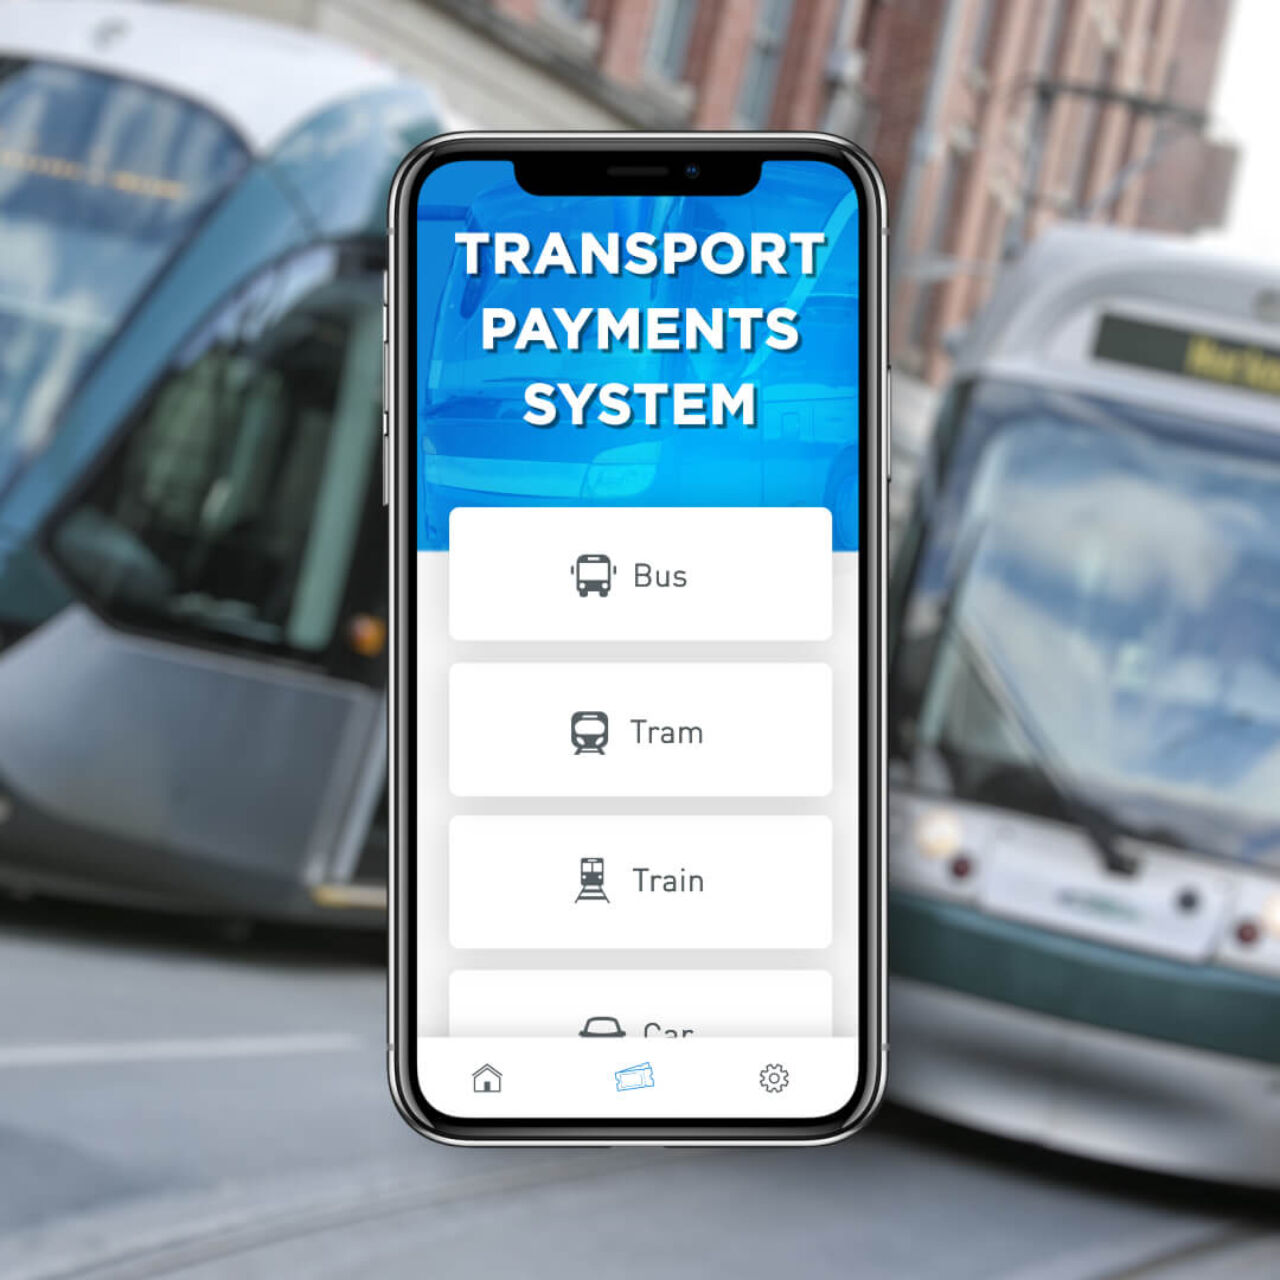 Transport Payment System - Types of transport